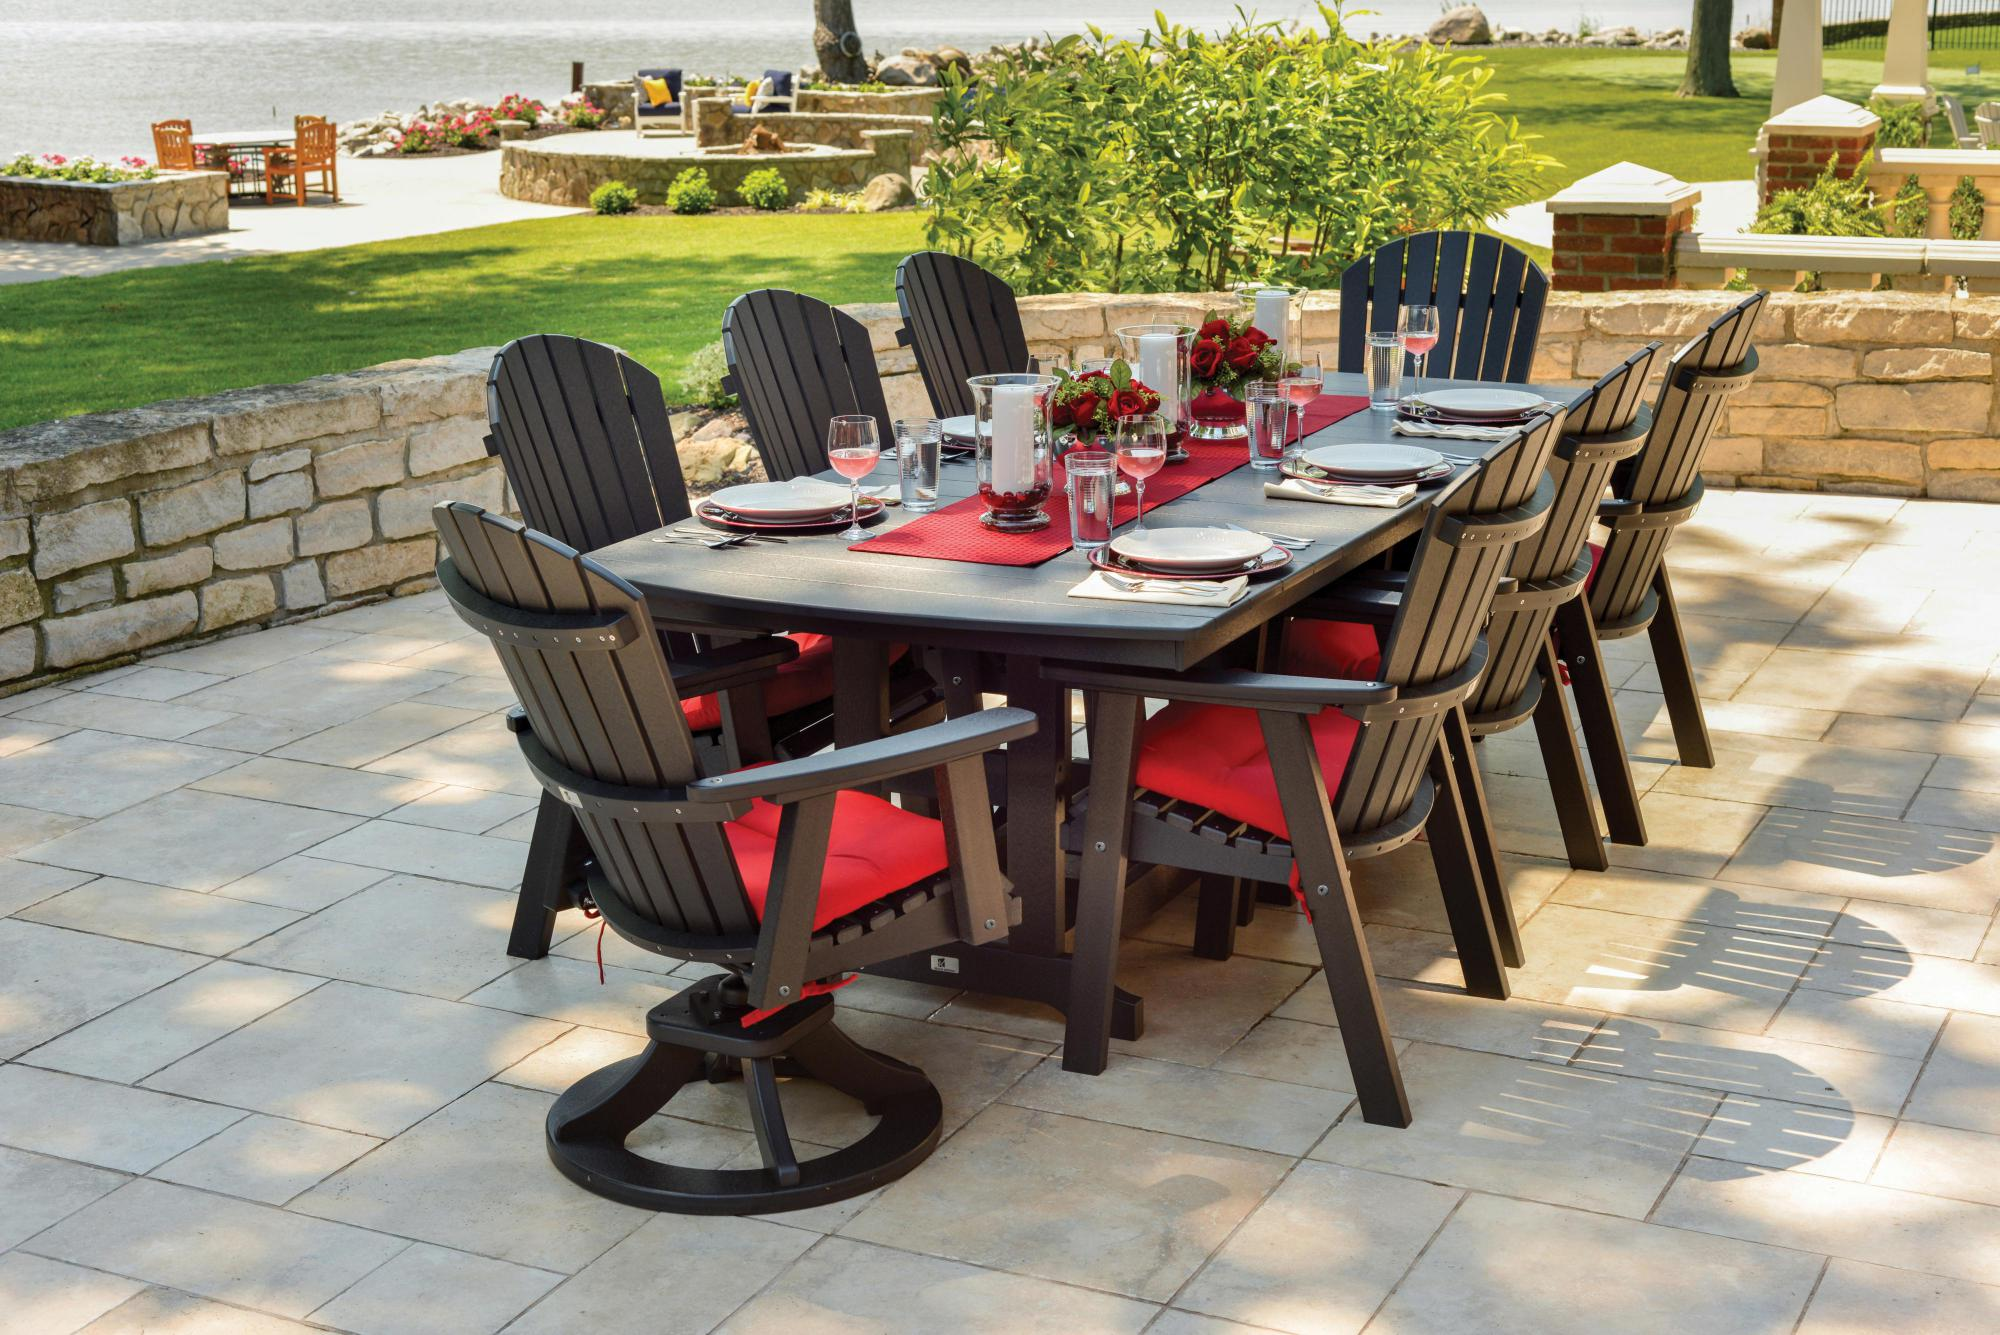 Comfo Back Dining Chairs and Swivel Rockers with 44x96 Inch Table Lifestyle